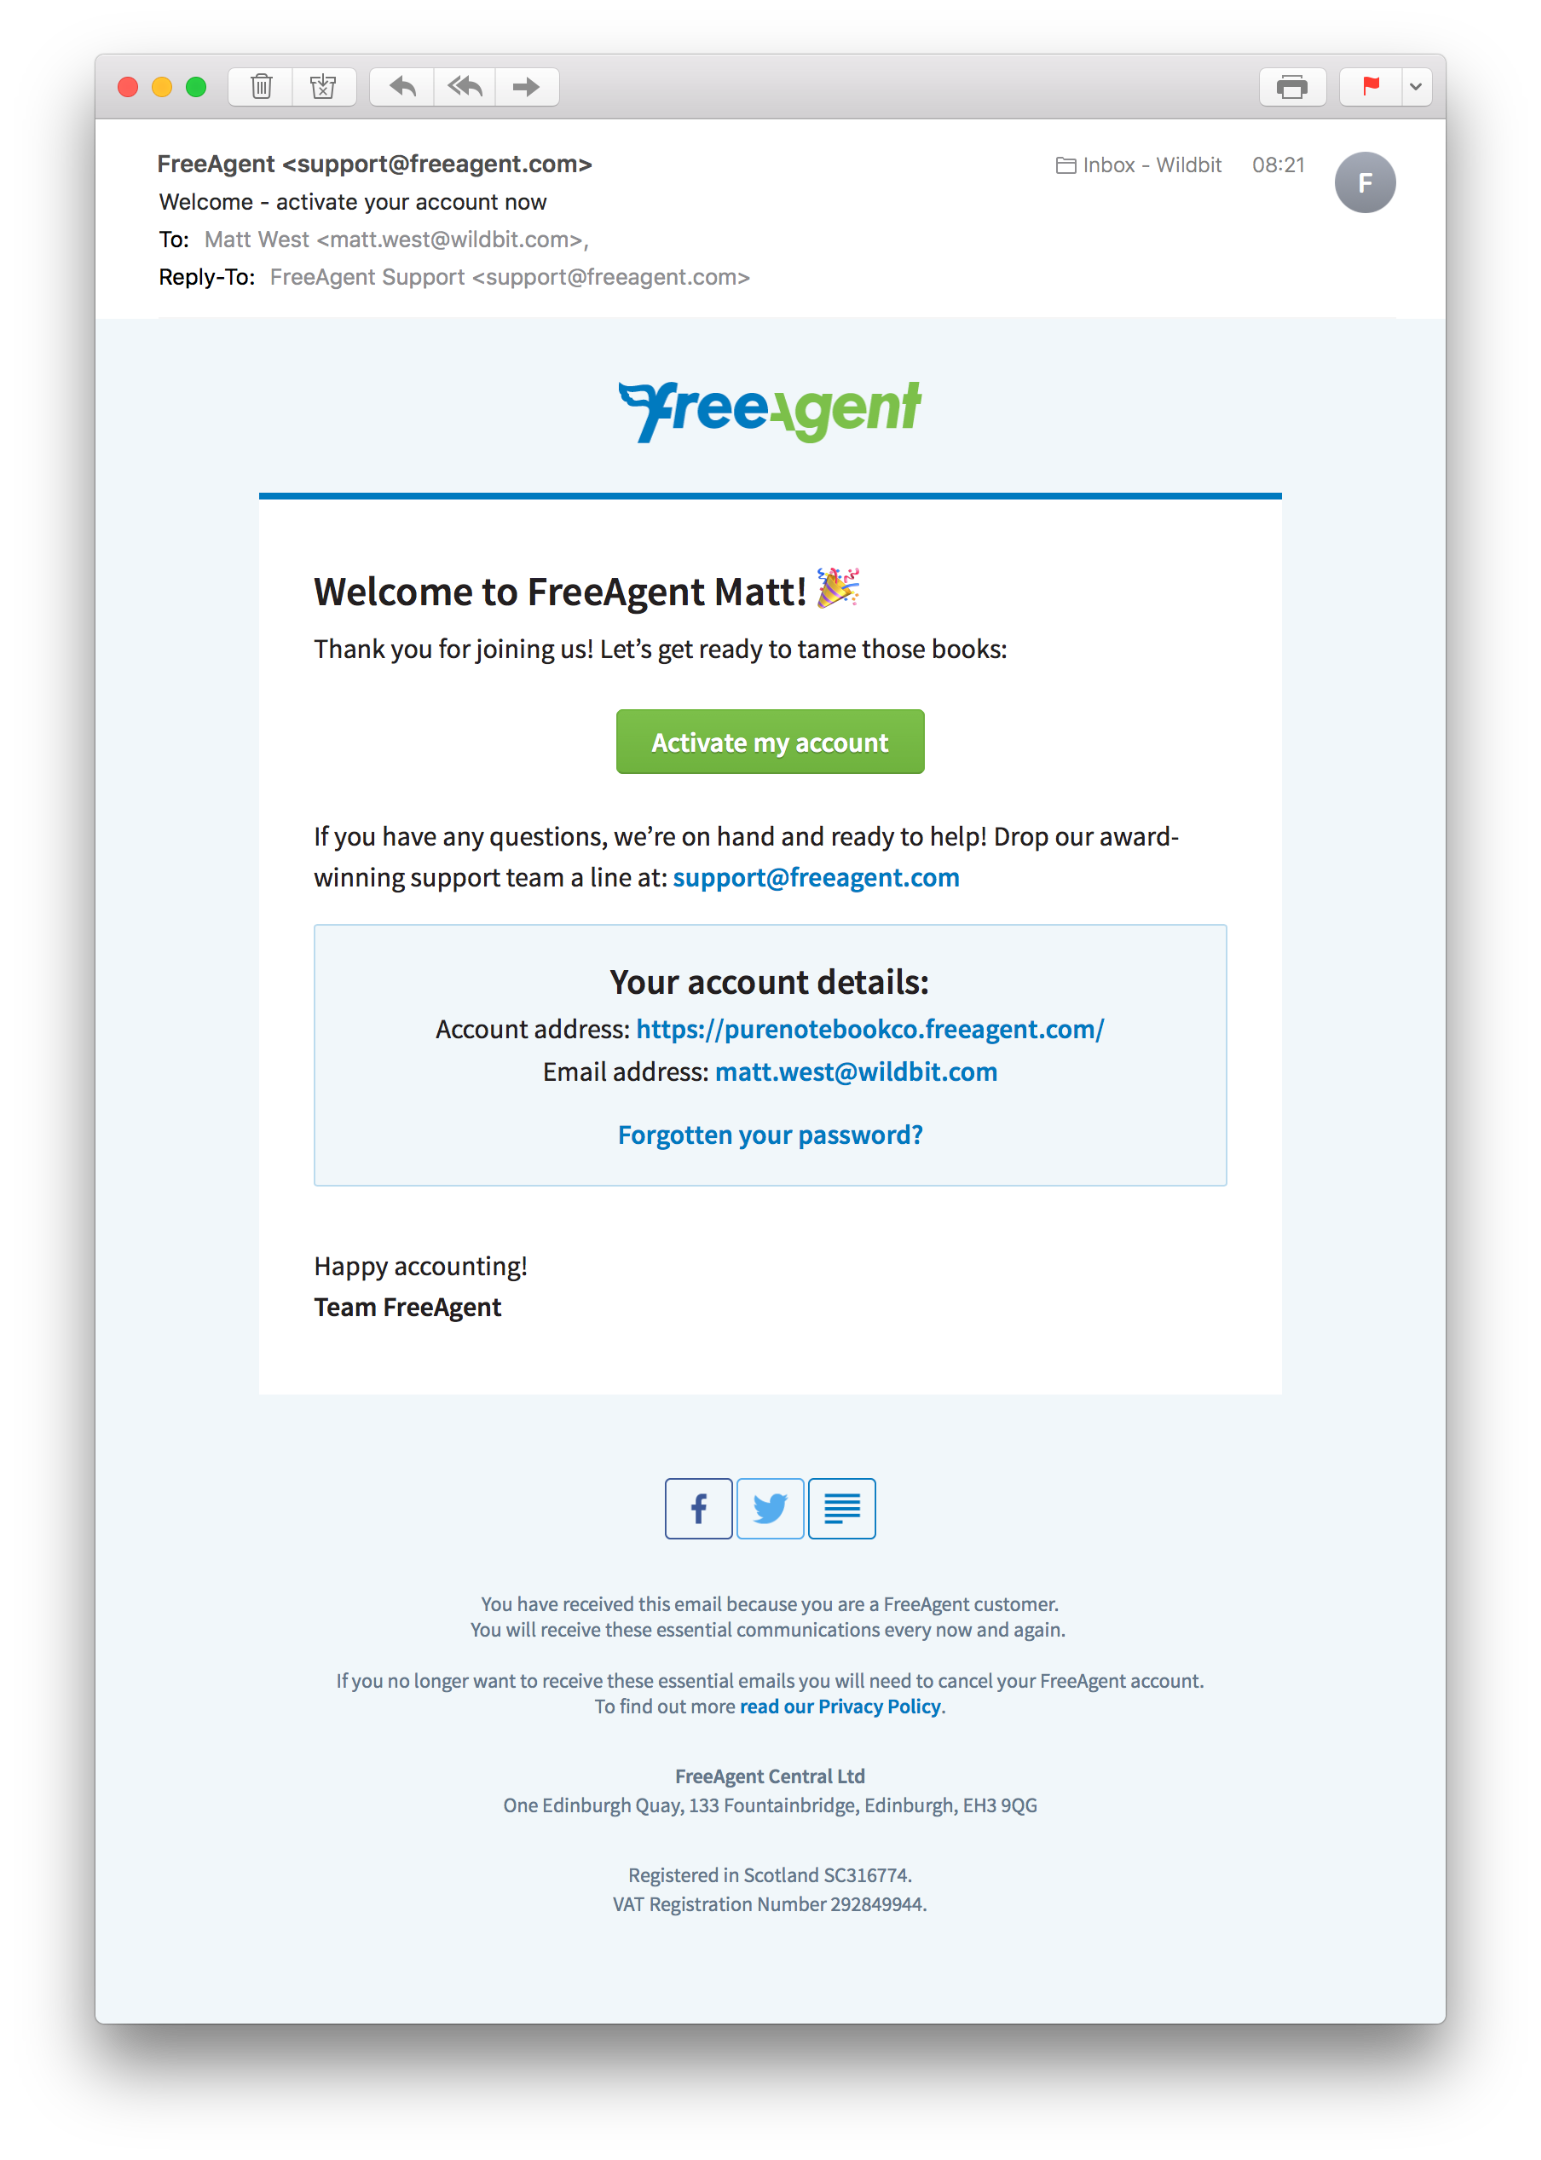 FreeAgent Activation Email